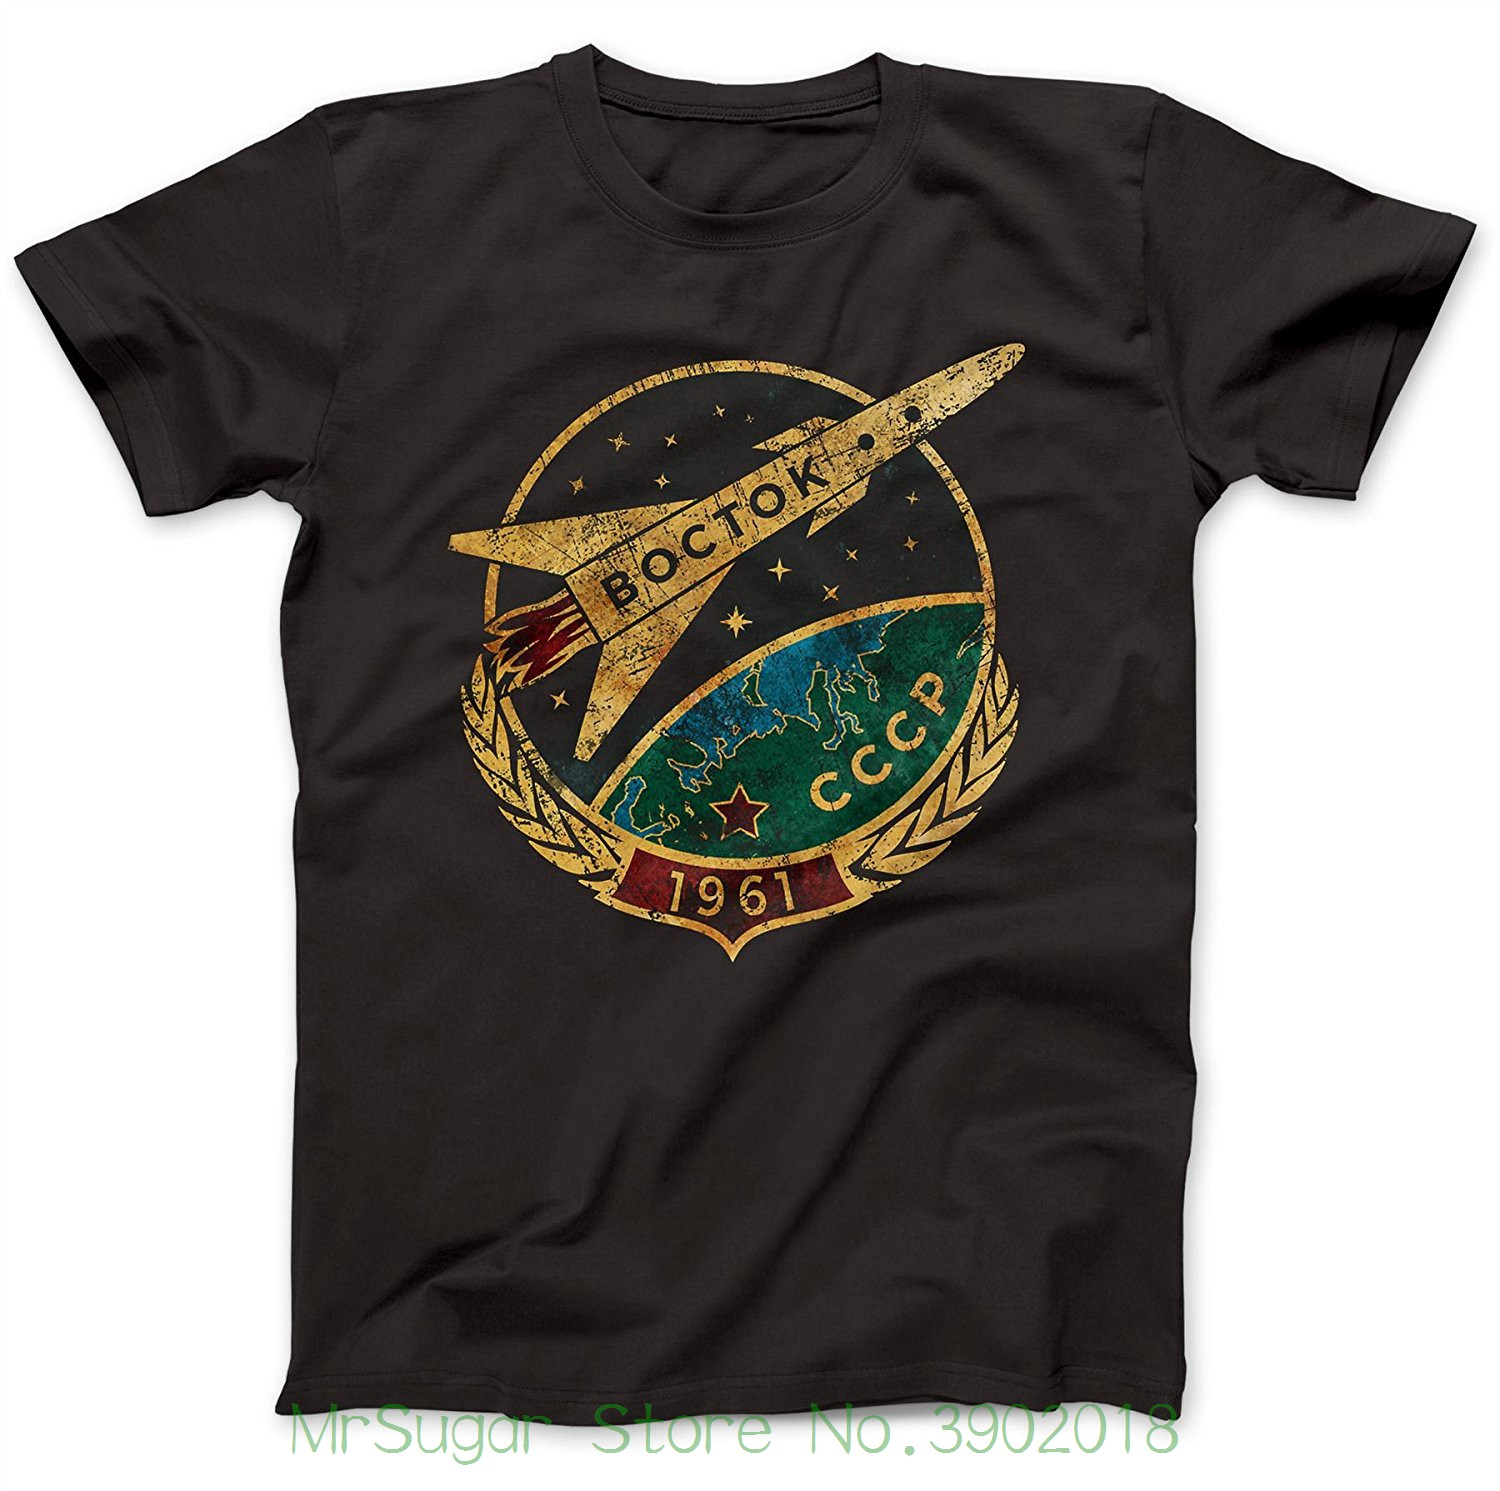 Bees Knees Tees Cccp Soviet Vostok T-shirt 100% Premium Cotton New Metal Short Sleeve Casual Shirt